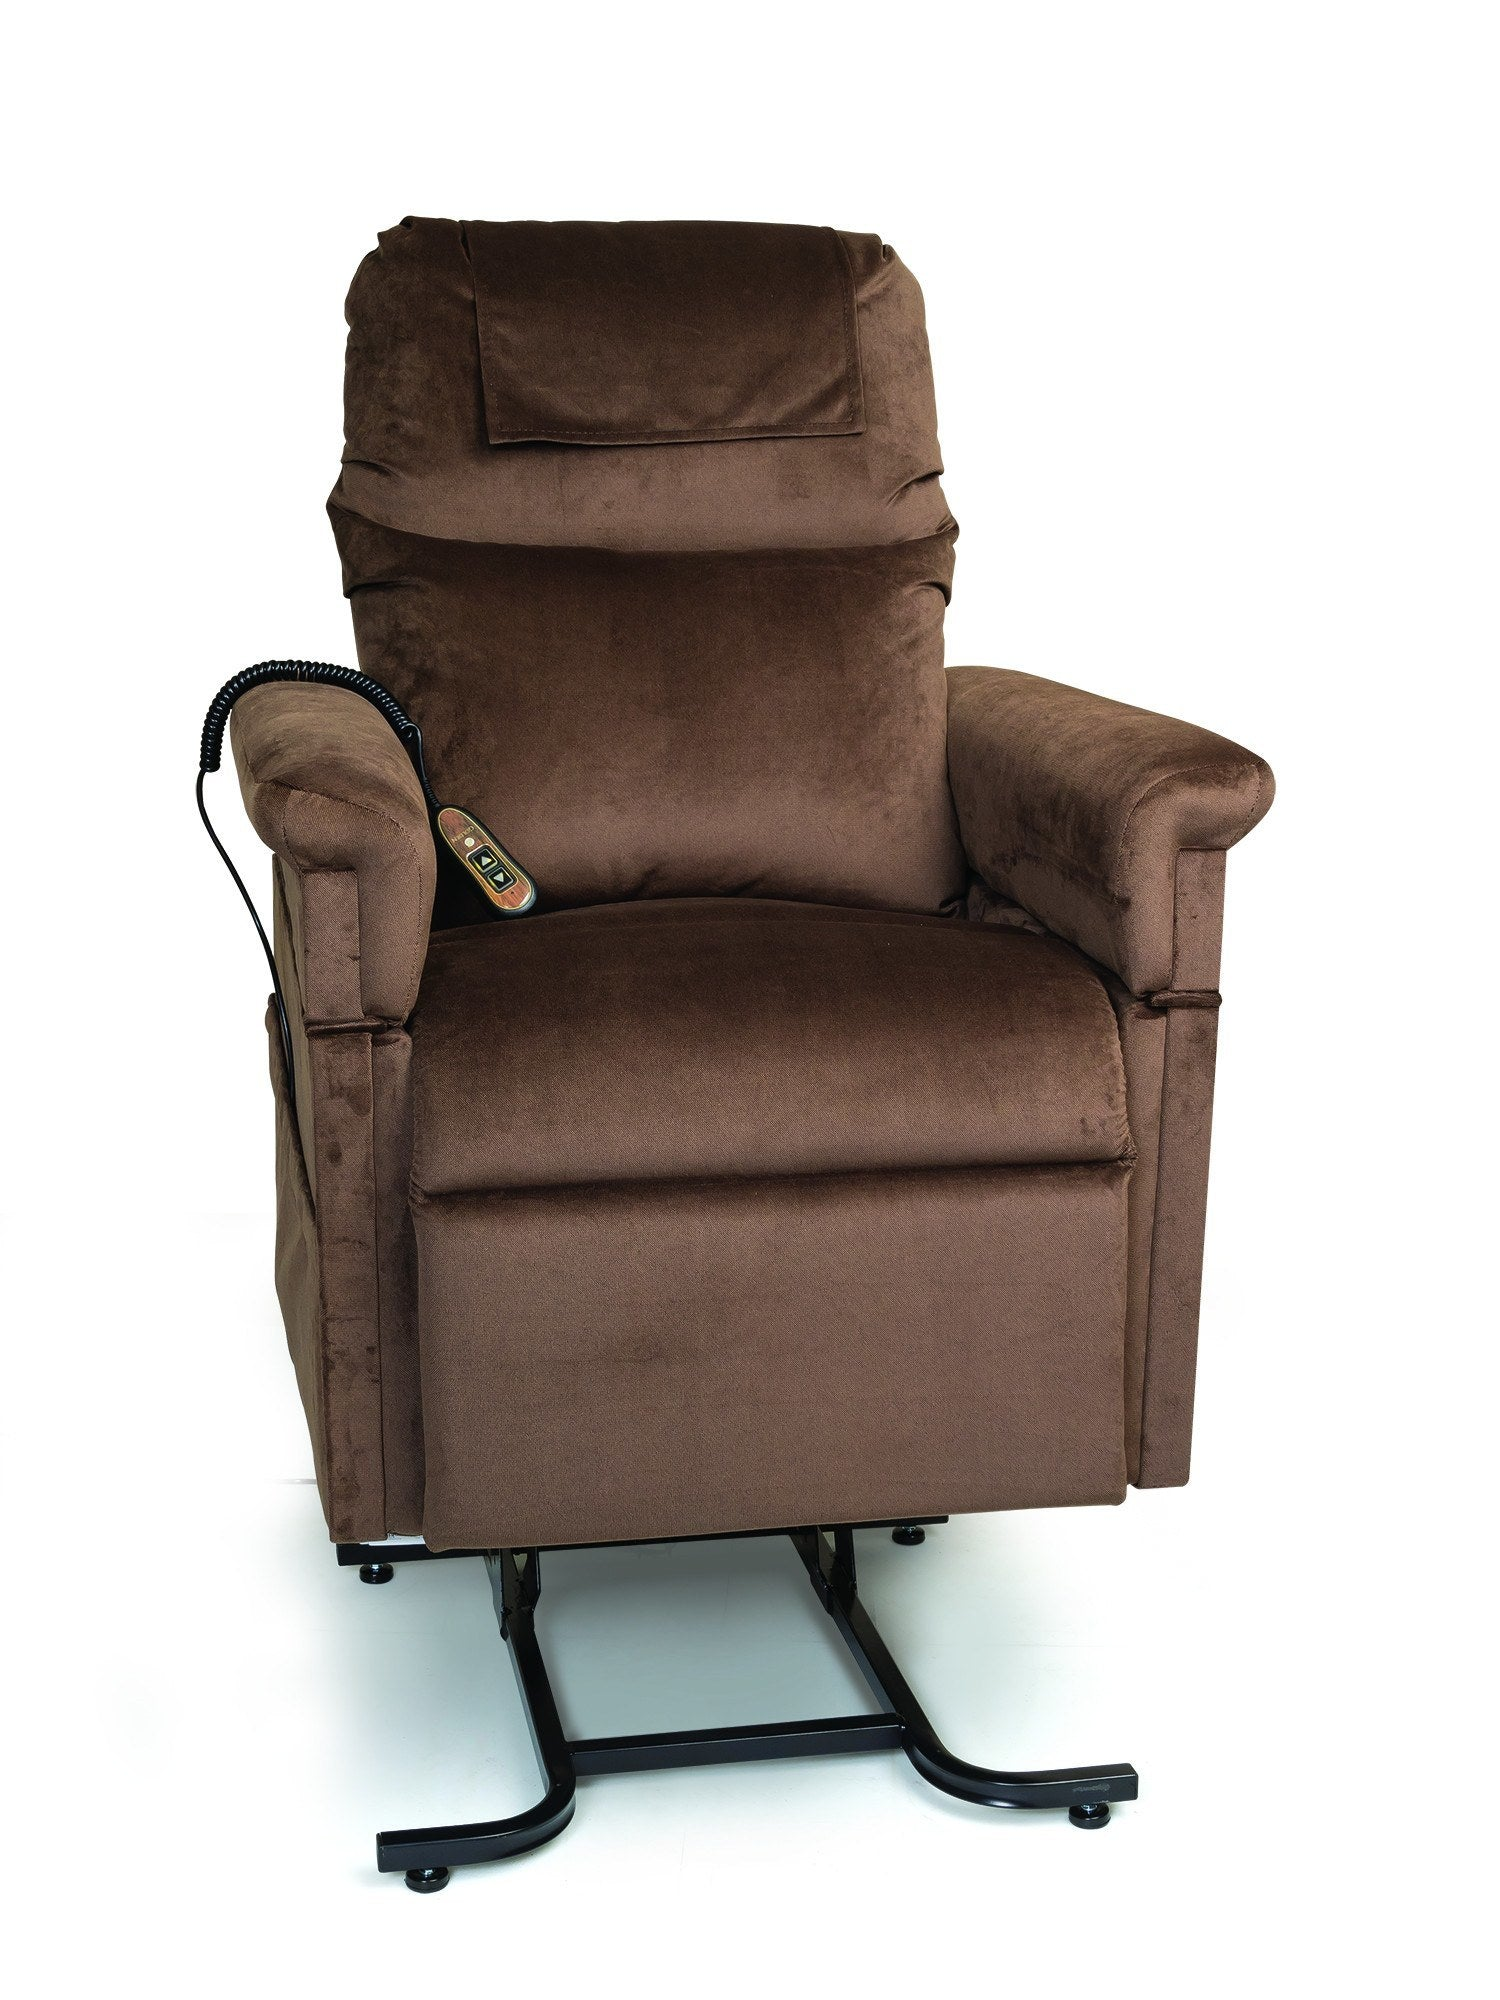 Golden Signature Series PR 451 Transfer Lift chair MEDability